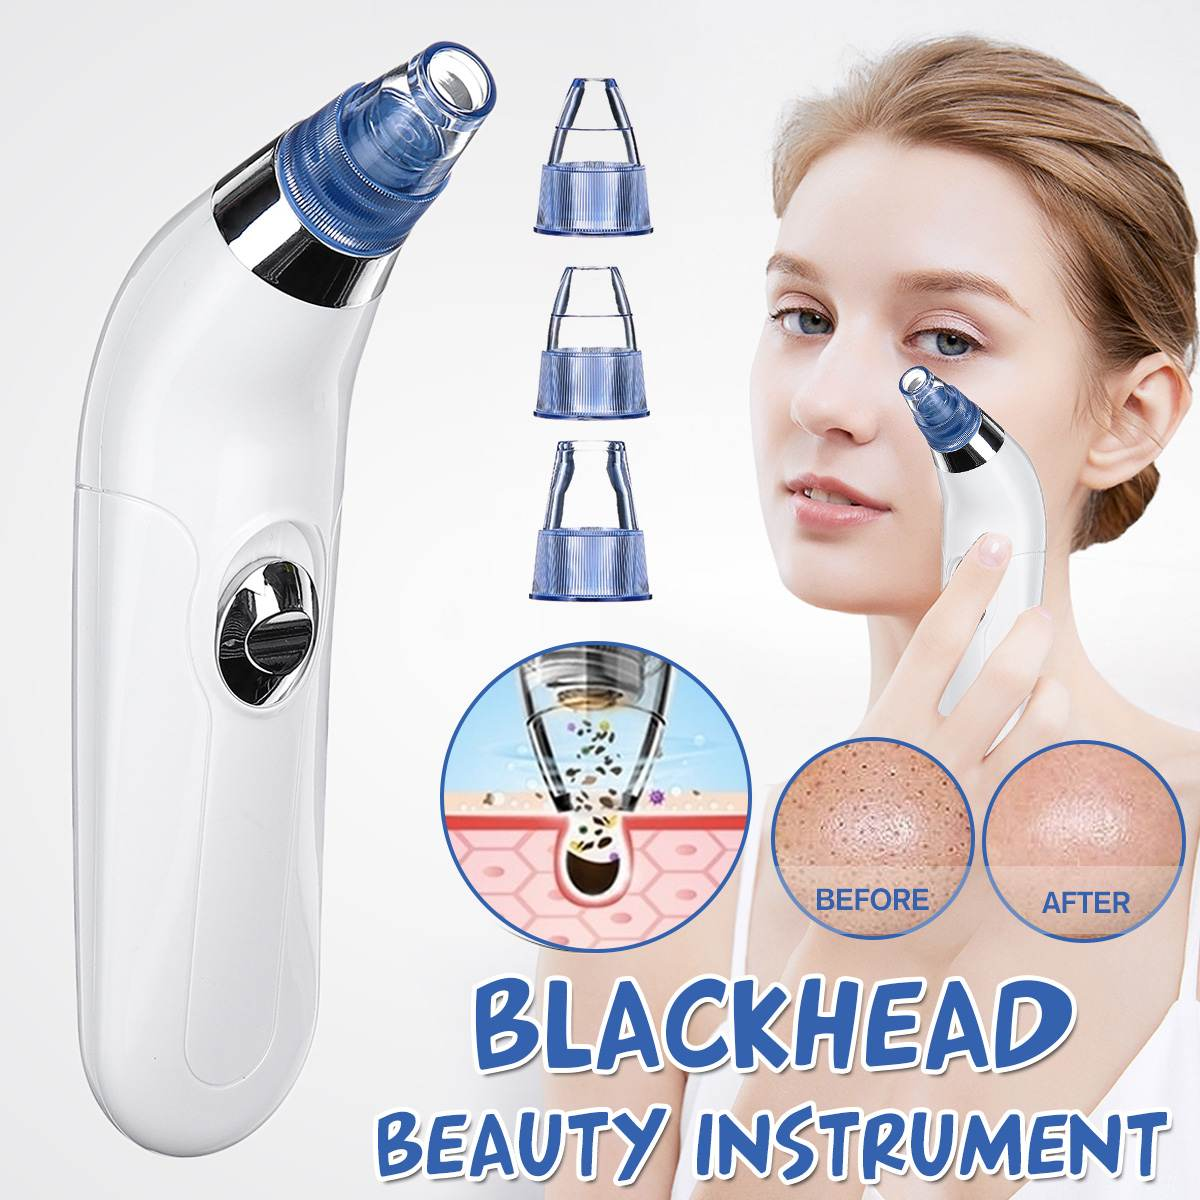 4 Suction Heads Blackhead Remover Vacuum Pore Cleaner Acne Blackhead Facial Removal Suction Machine Skin Care Tool Face Cleaning